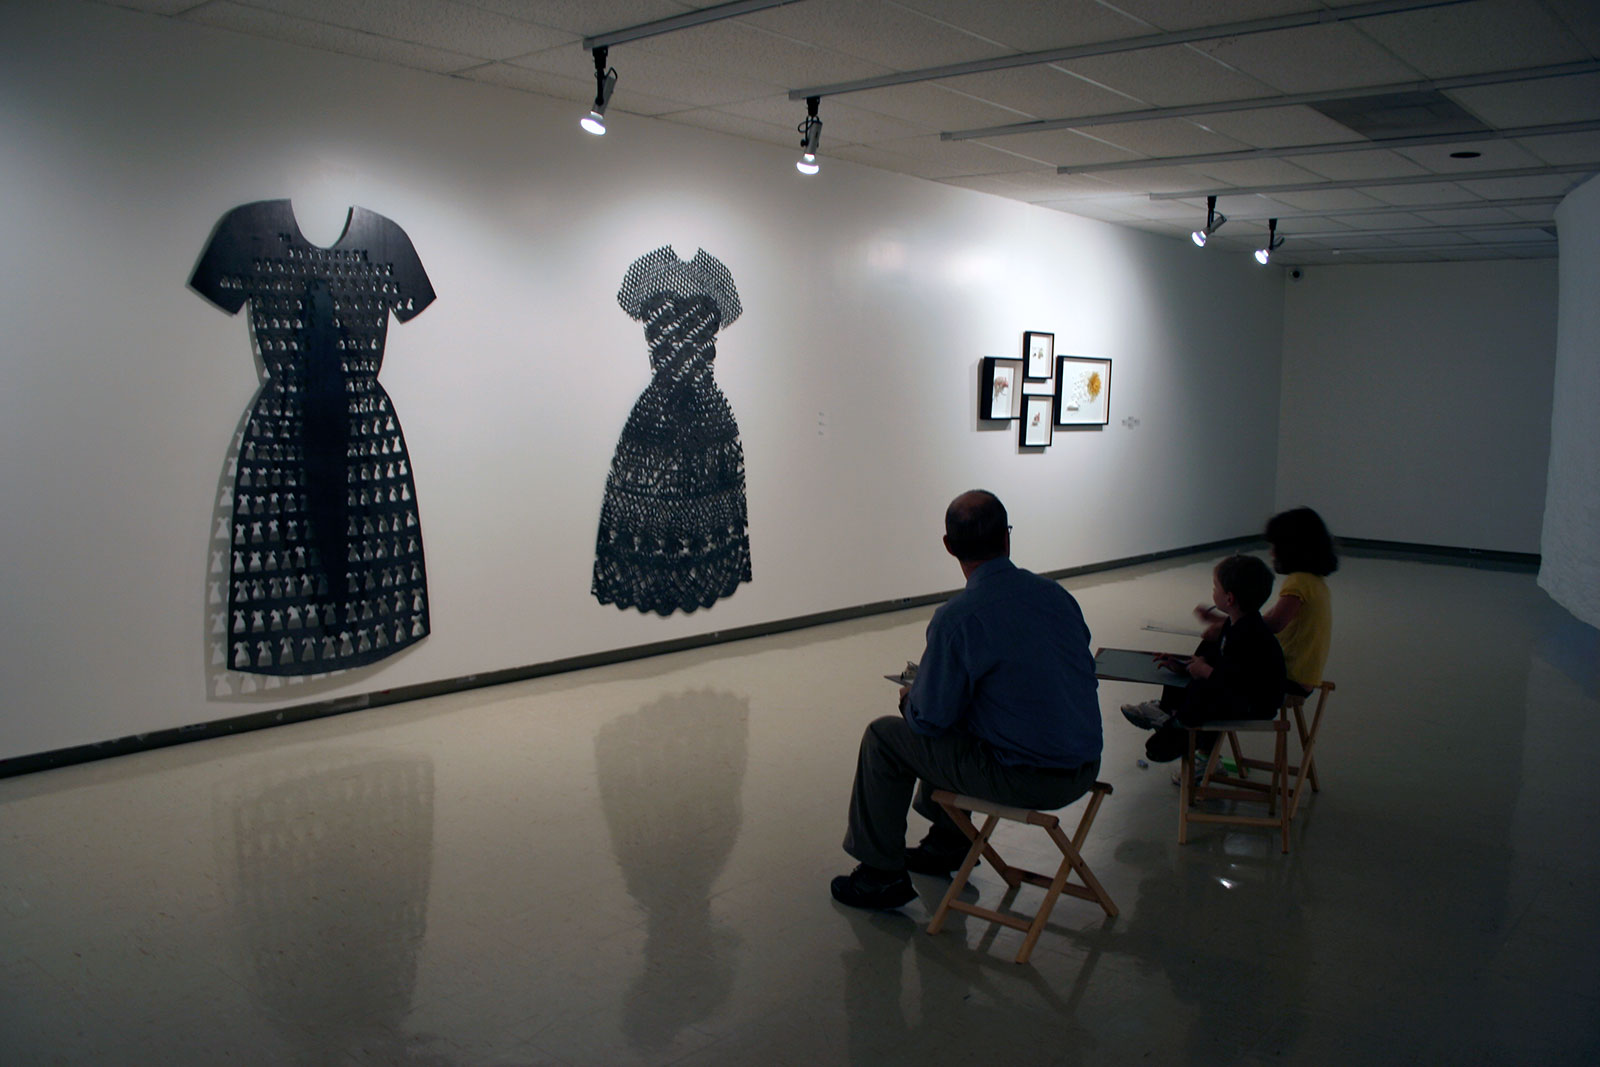 An adult and two children sit on folding stools in a darkened gallery. They hold clipboards and pencils and look towards two large, flat dress-shaped sculptures that hang on the wall.